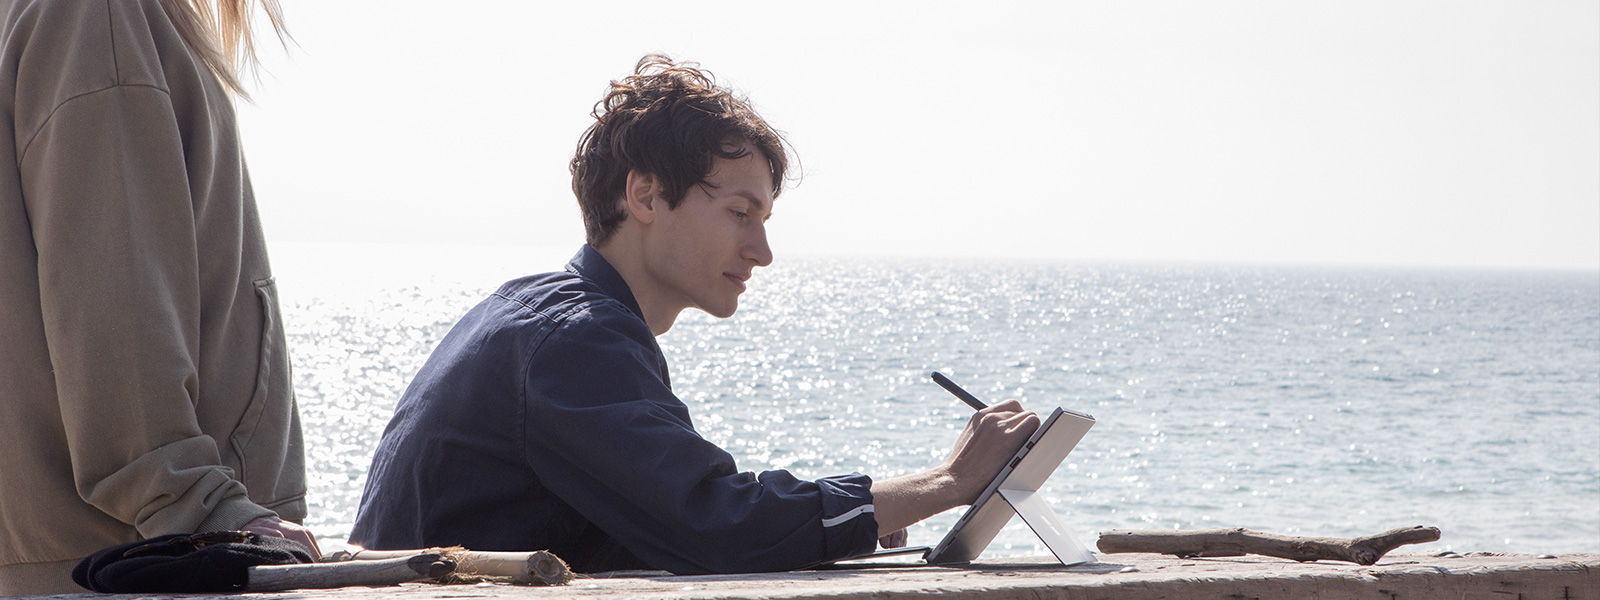 Man using Surface Pro in outdoor setting.